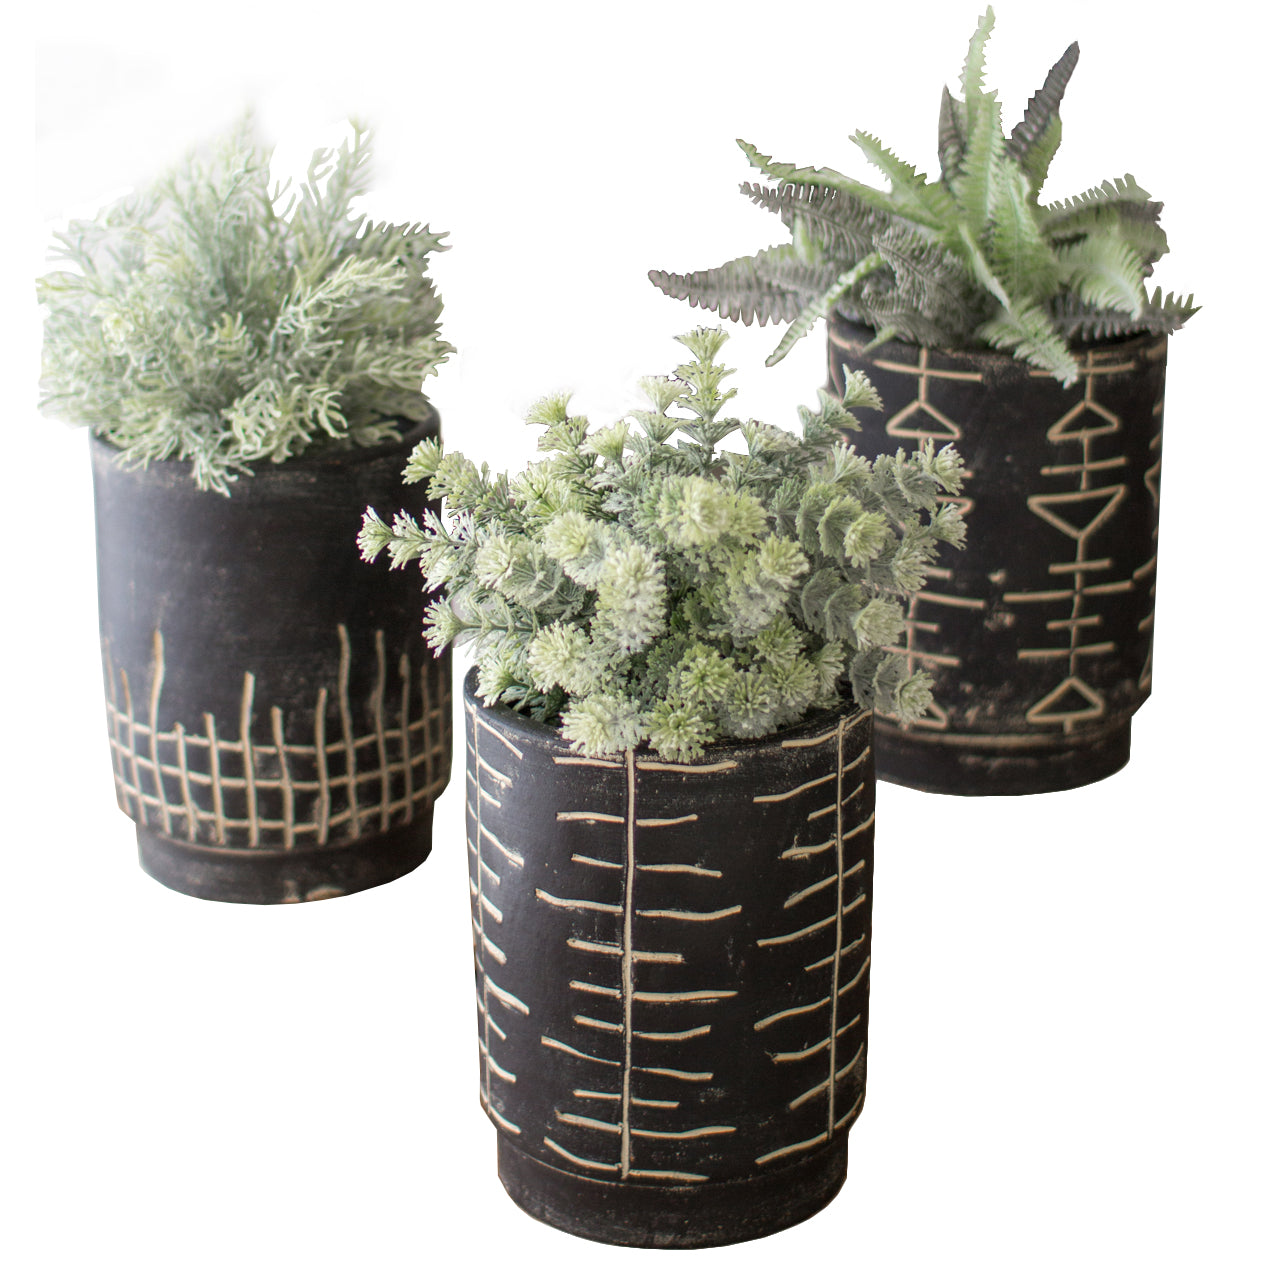 make for small planters clay plants pots handmade fresh your little diy own planter succulent